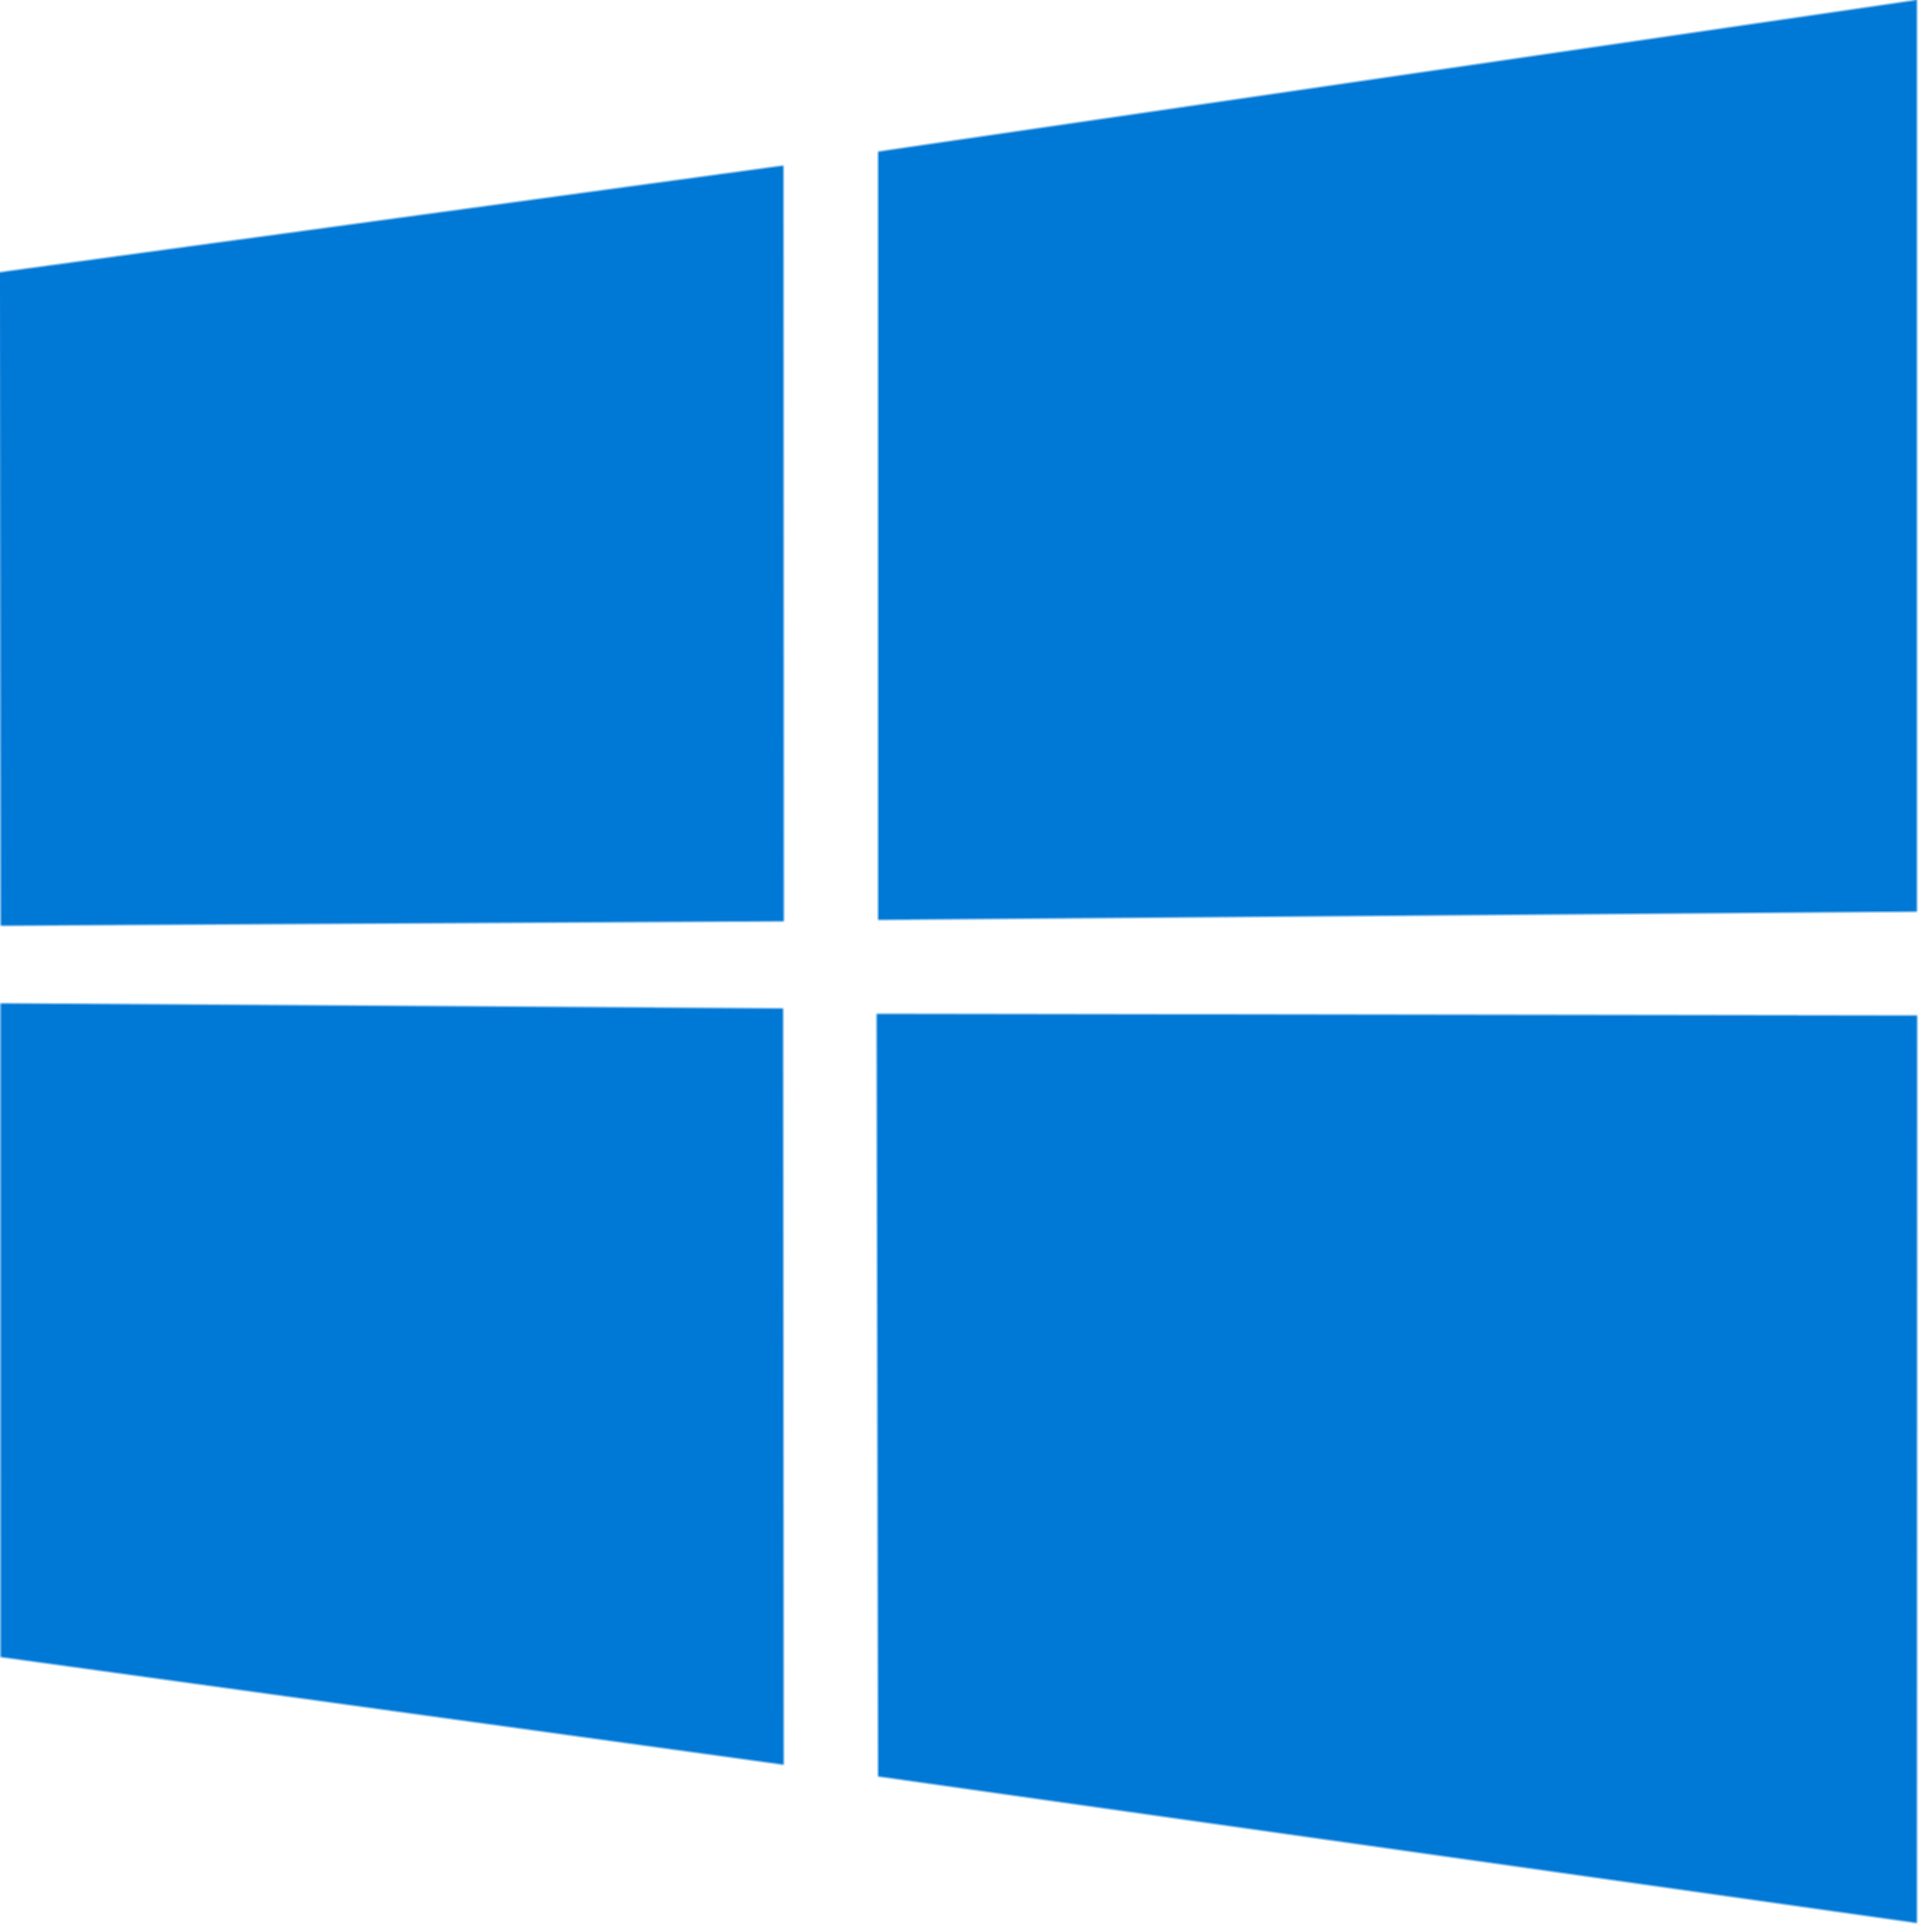 파일:external/upload.wikimedia.org/2000px-Windows_logo_%E2%80%93_2012_%28dark_blue%29.svg.png